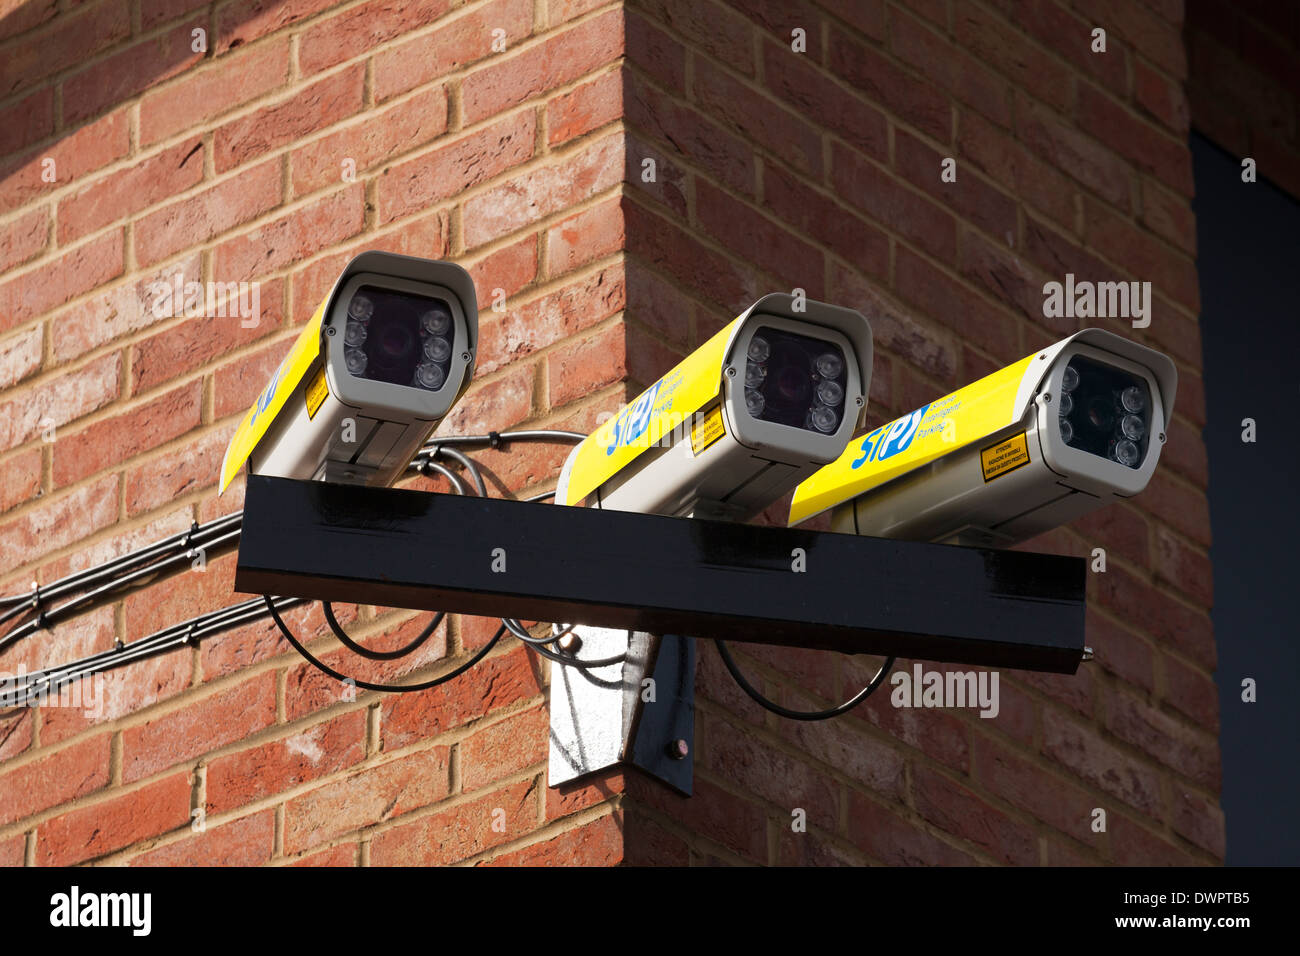 Three car park monitoring video cameras. - Stock Image